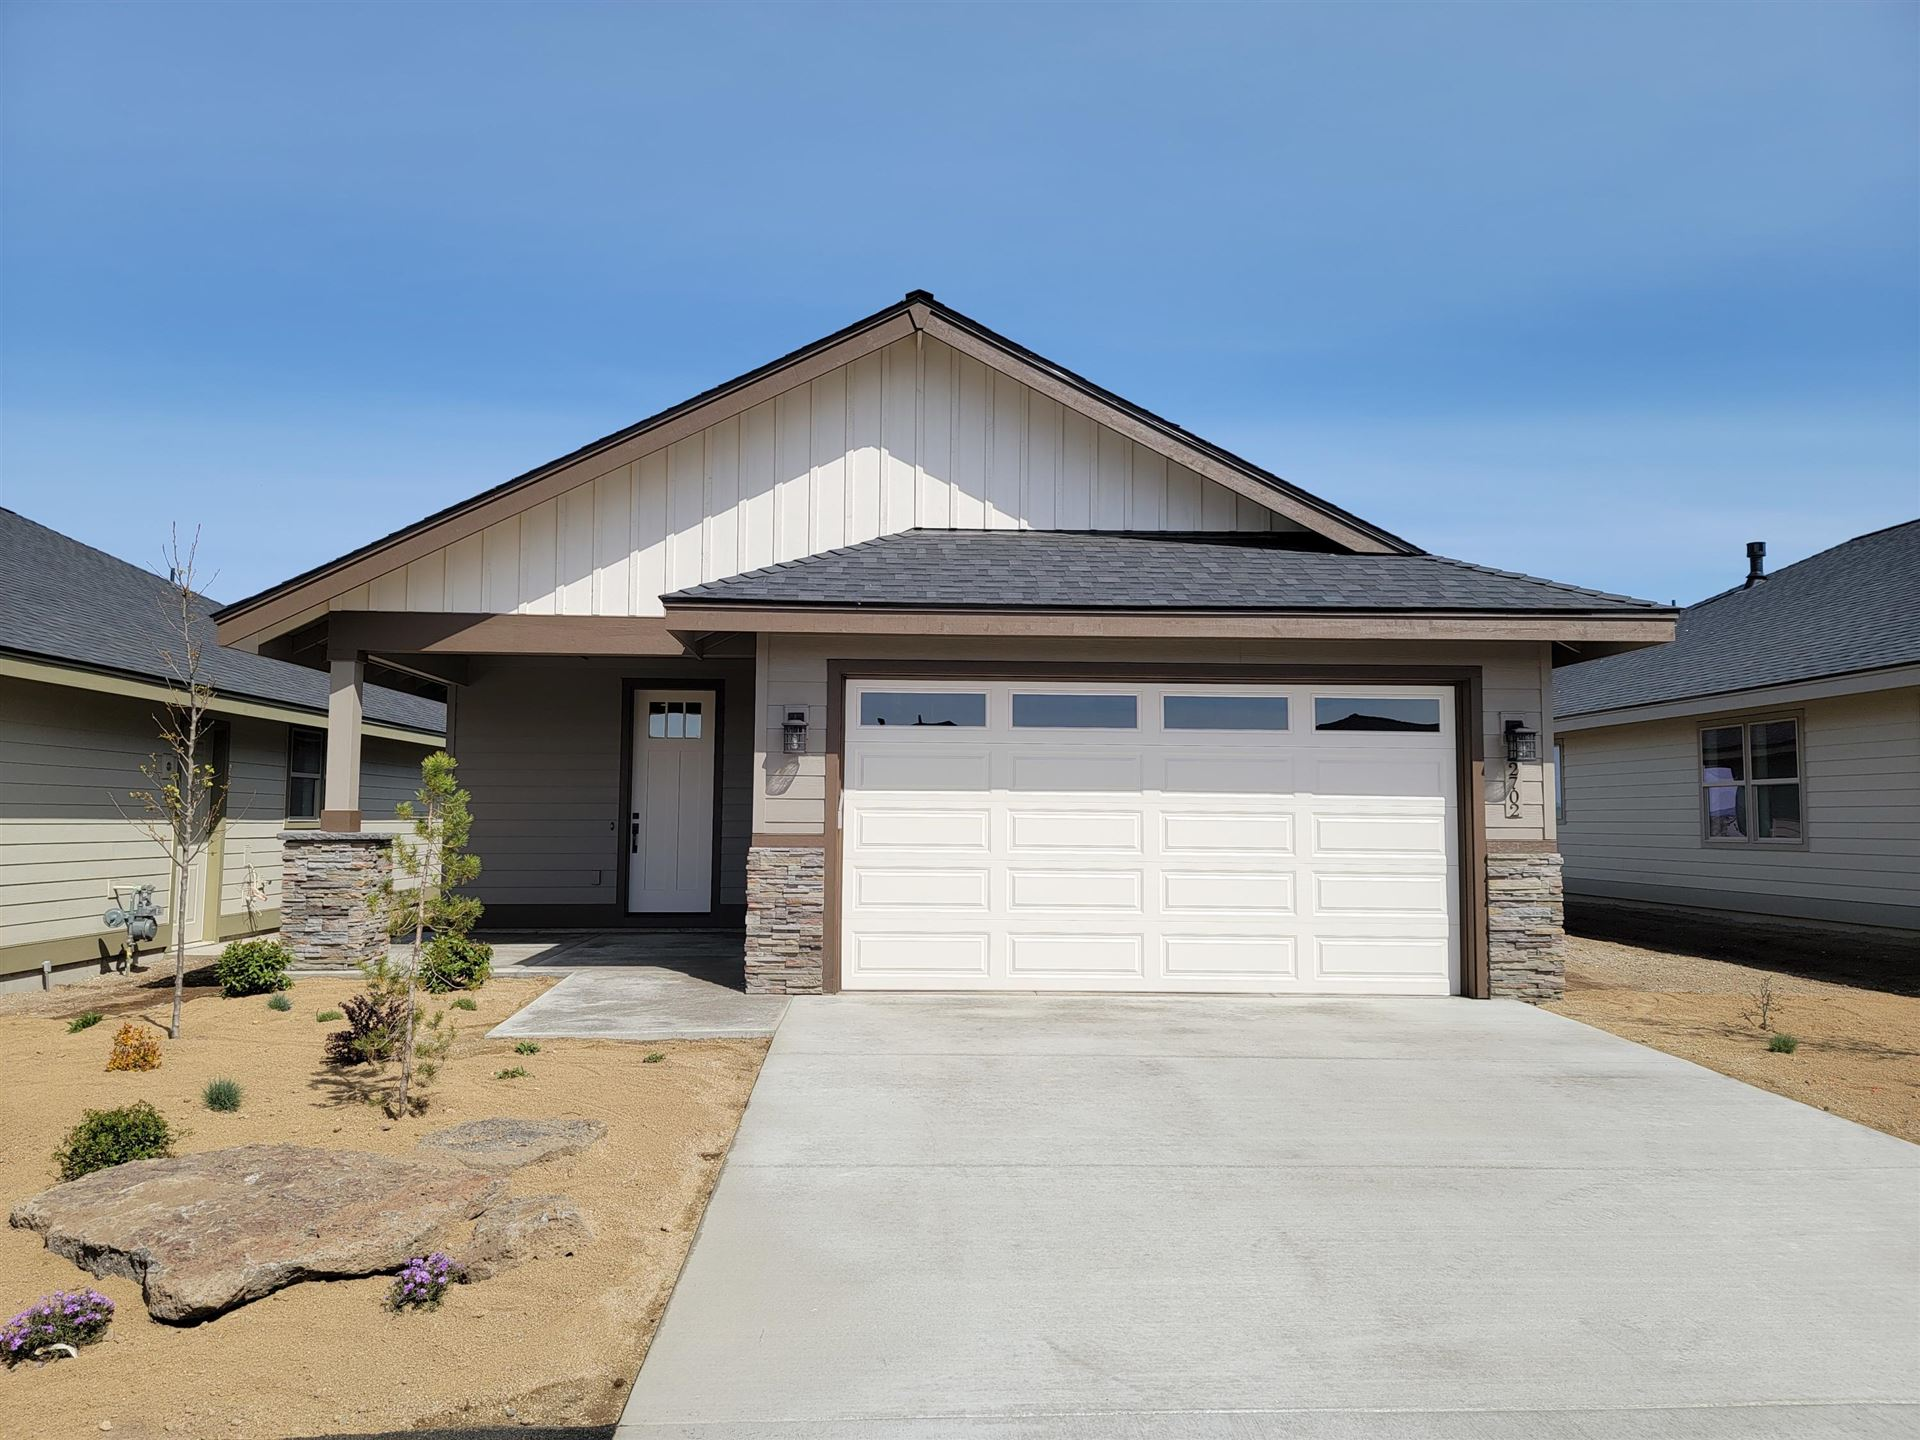 Photo of 34 NW 25th Street, Redmond, OR 97756 (MLS # 220101708)